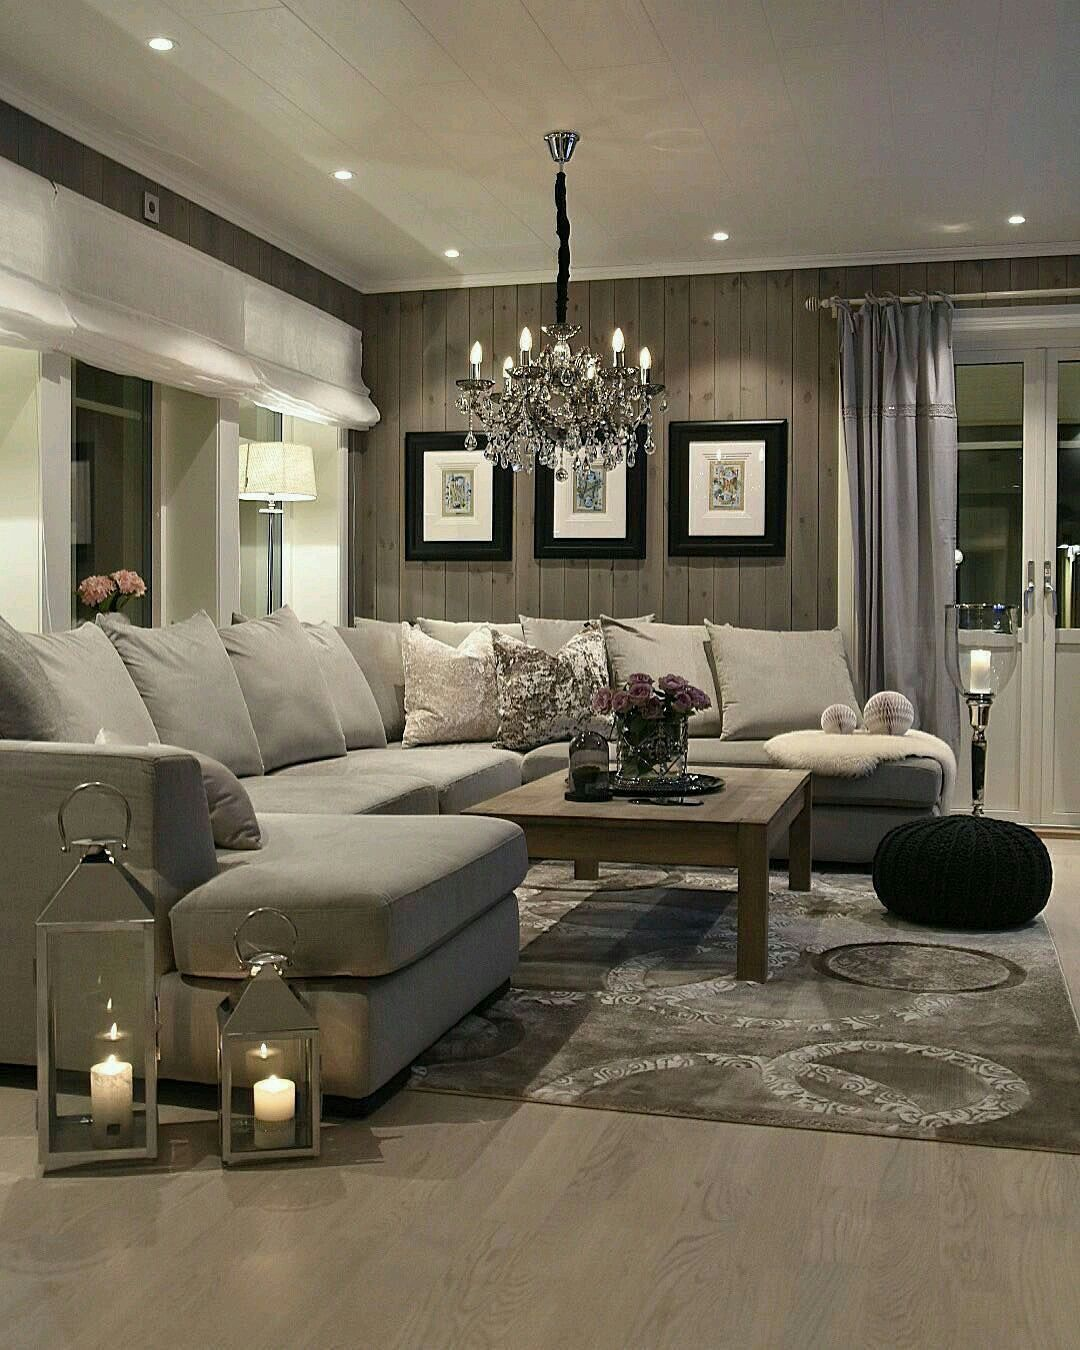 30 Best Living Room Decorating Ideas & Designs images